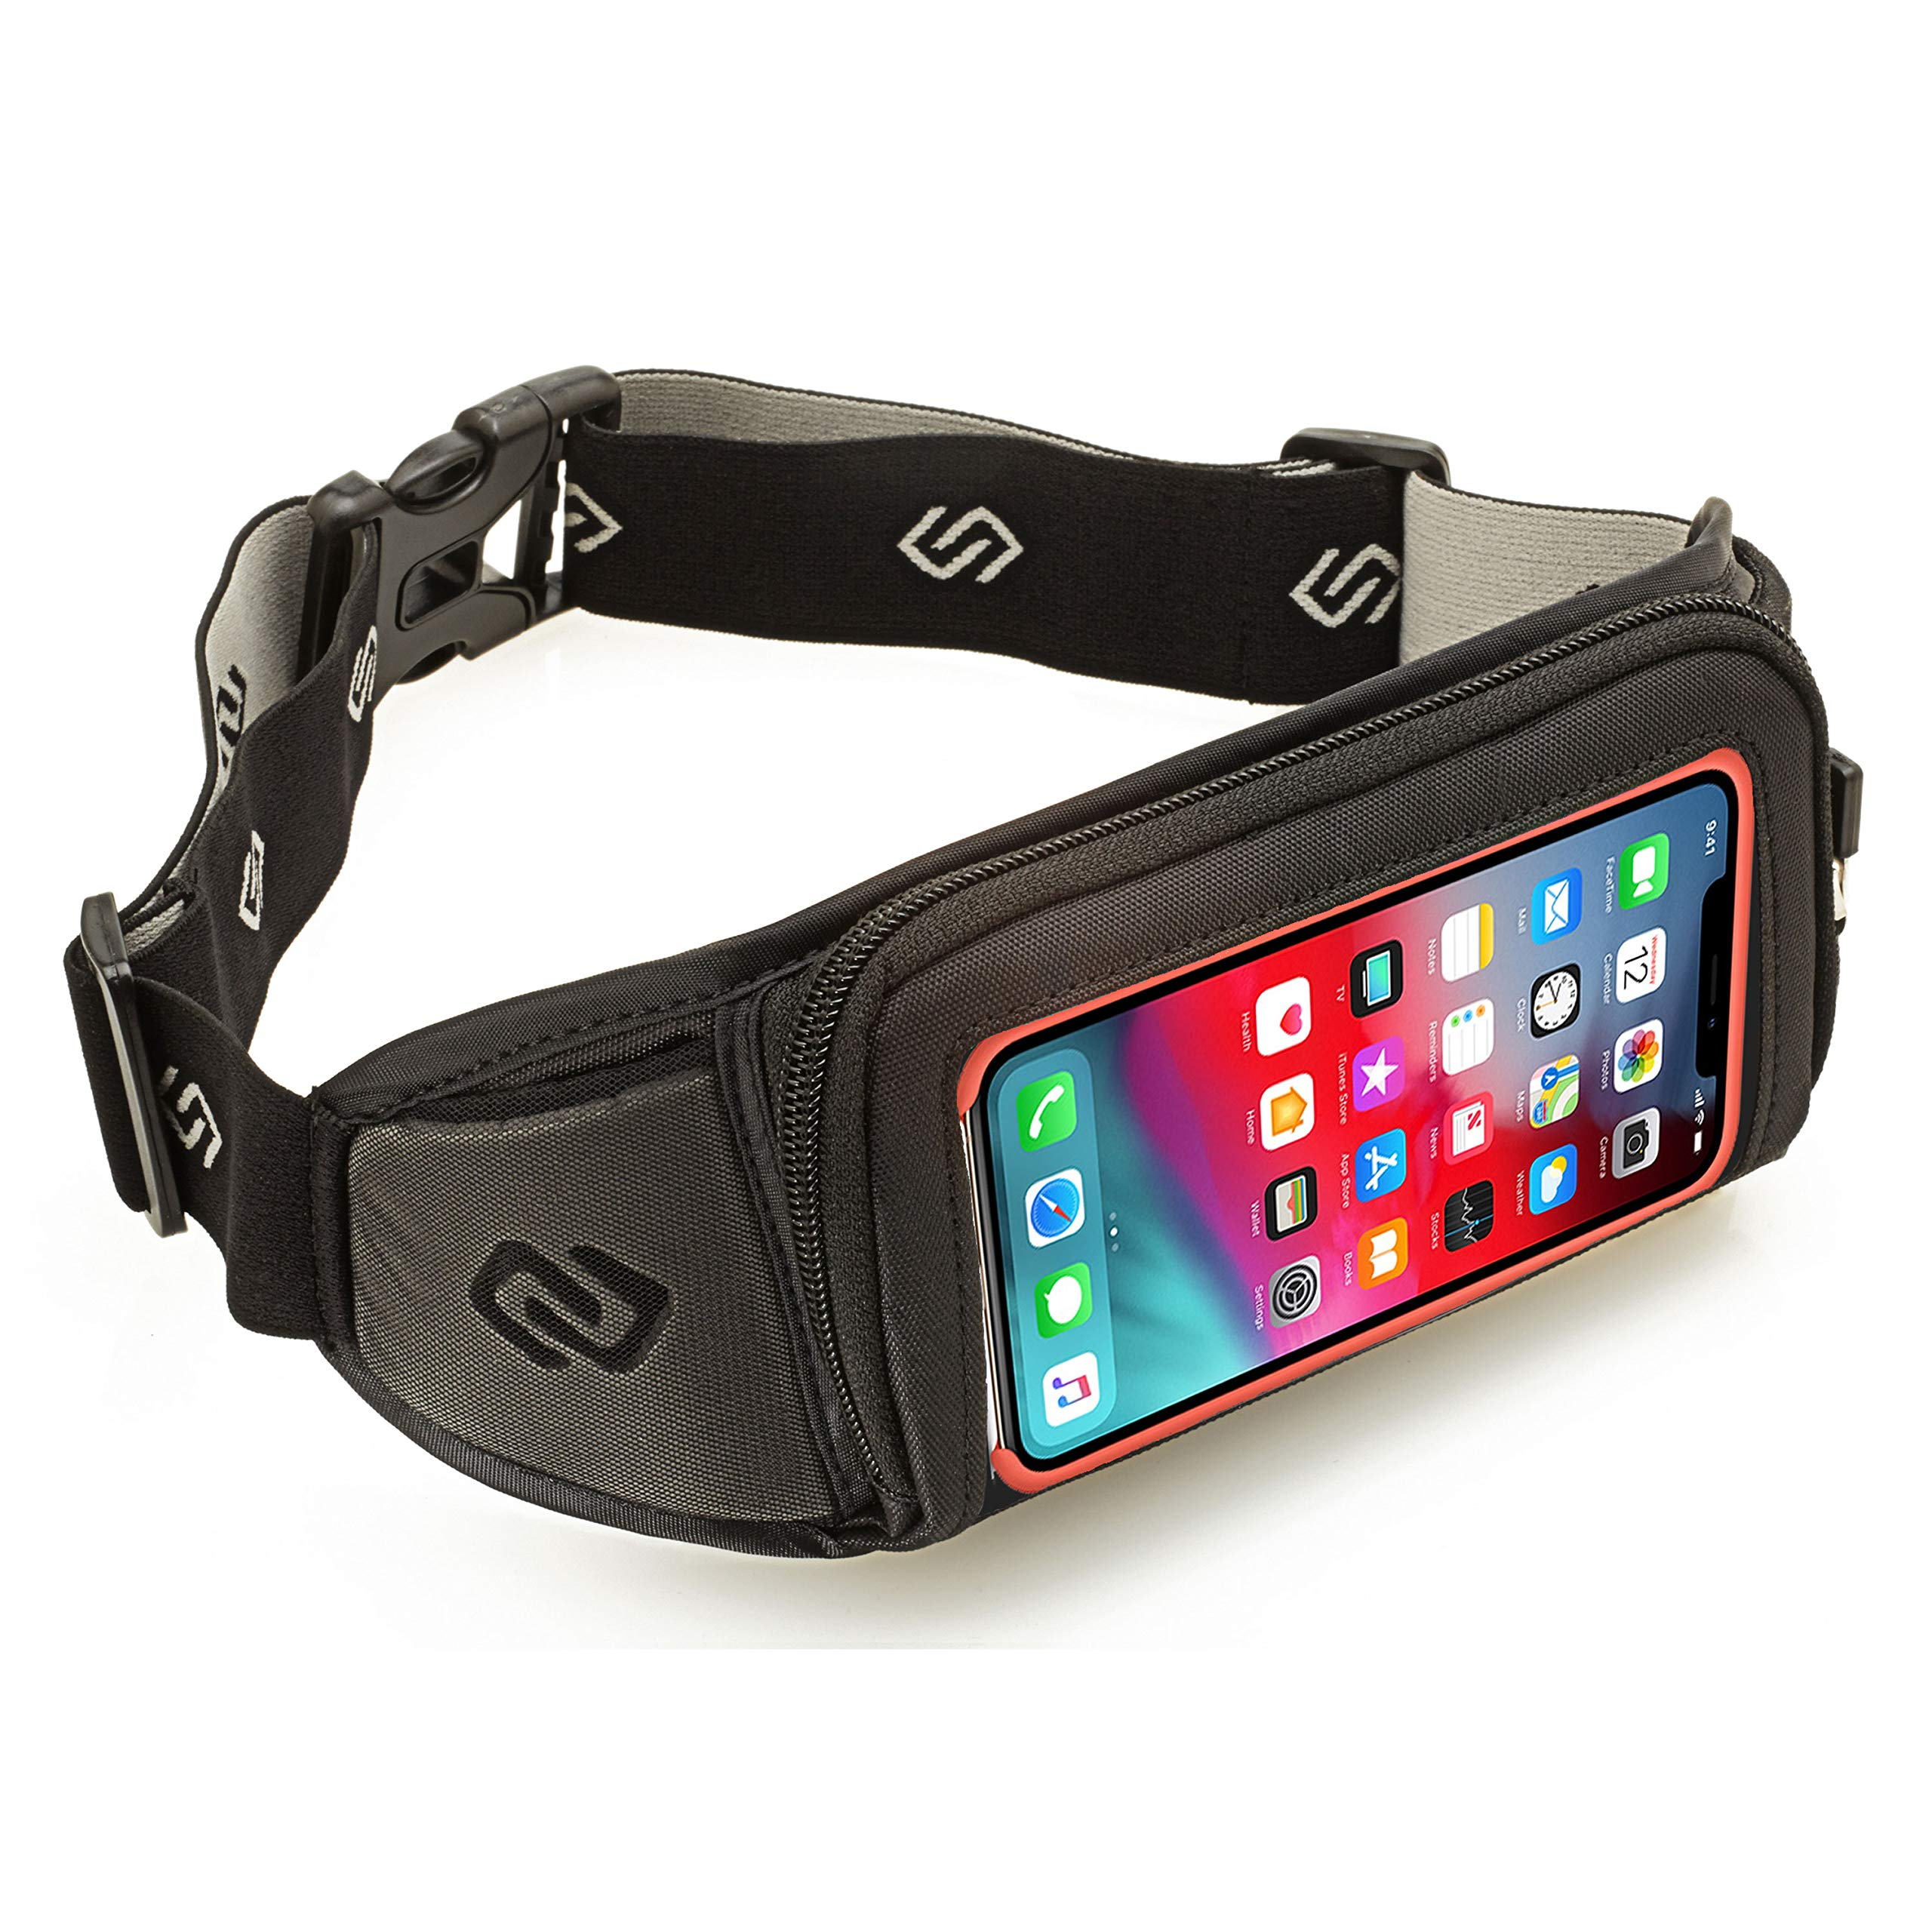 Sporteer Kinetic K1 Running Belt Waist Pack - Compatible with iPhone 12 Pro Max, 11 Pro Max, Xs, XR, X, 8/7 Plus, iPhone 11, Galaxy S20 Plus, 10 Plus, Note 10+, 9, S9+, Pixel 4 XL, 3 XL, LG, Moto - Fits Cases